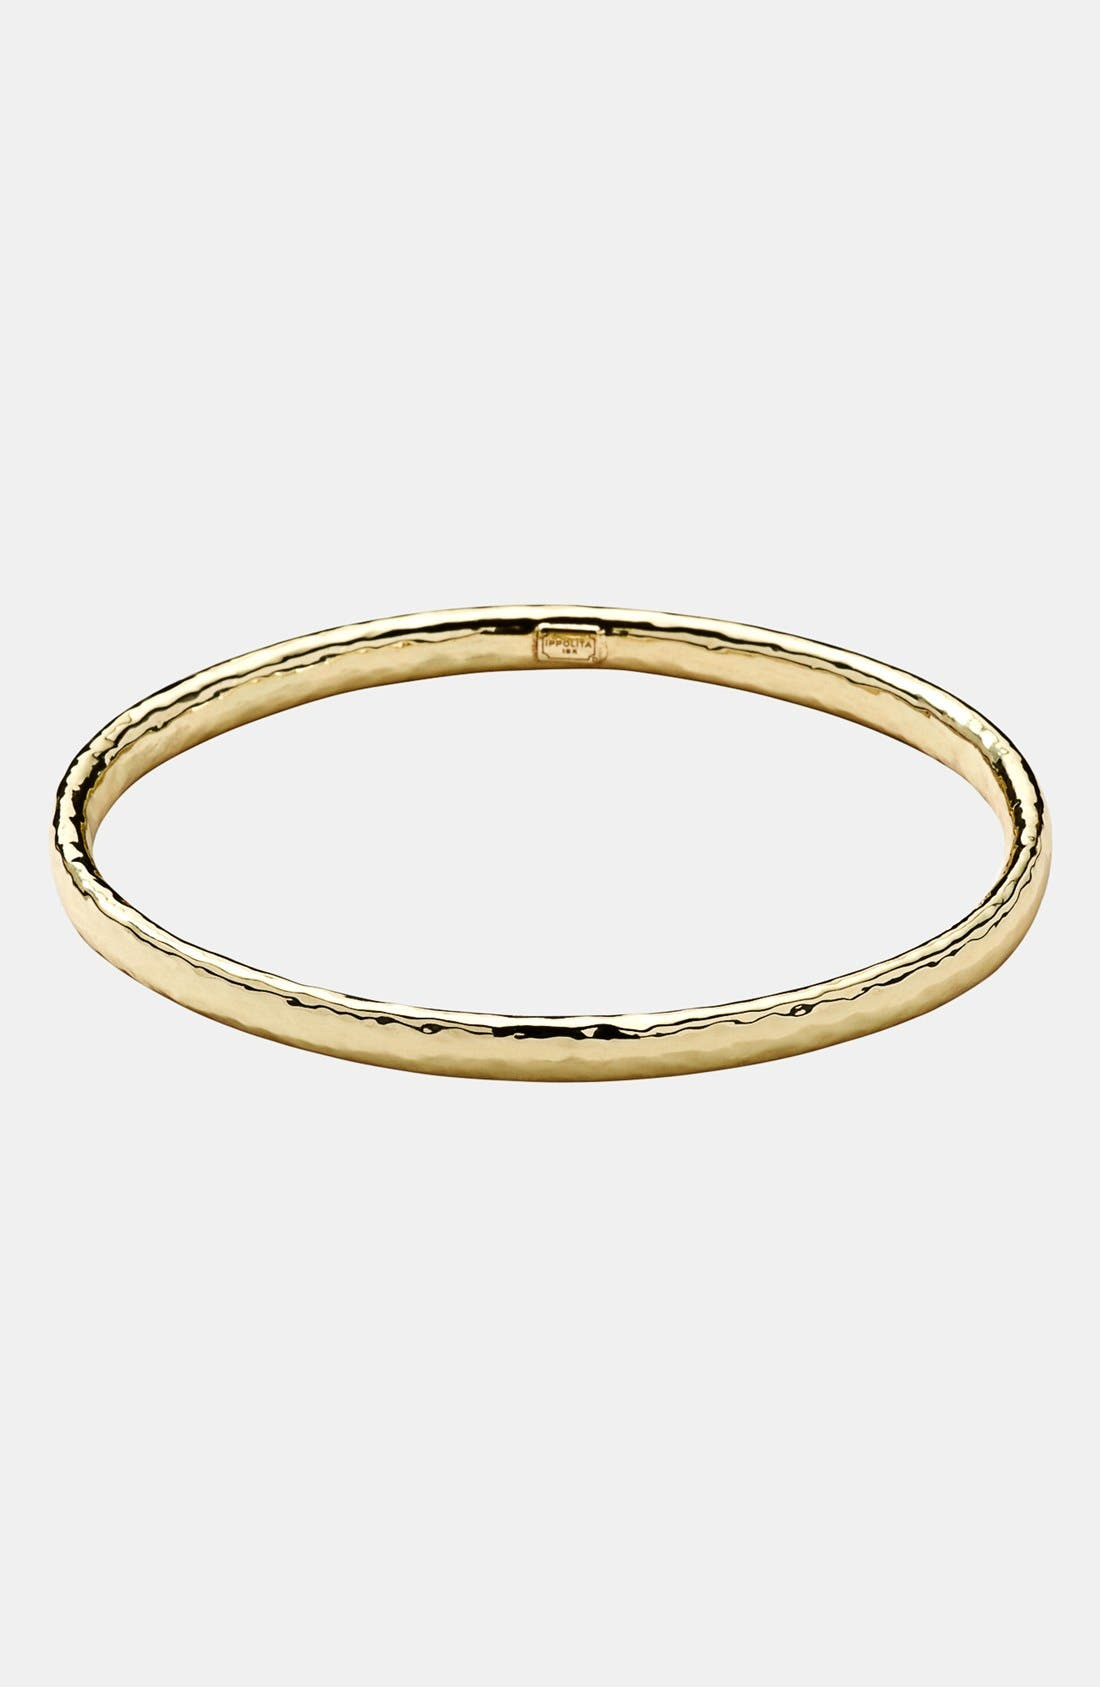 Main Image - Ippolita 'Glamazon' 18k Gold Bangle